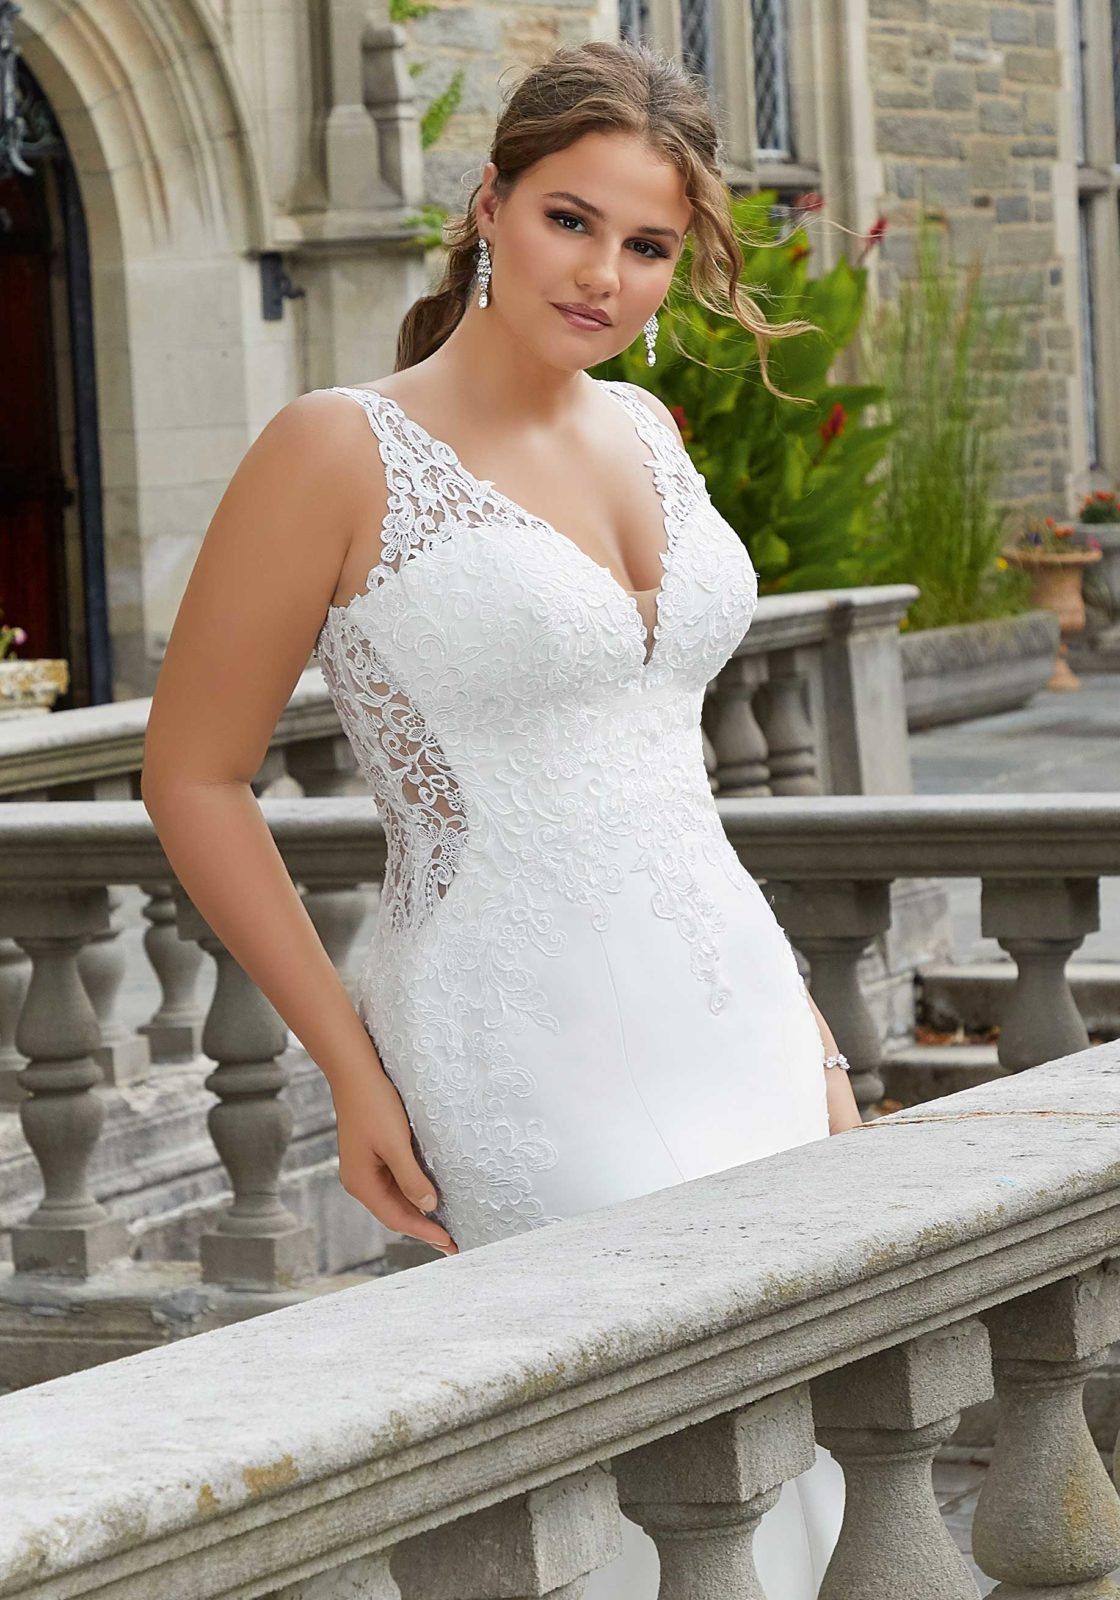 Julietta by Morilee at Miosa Bride